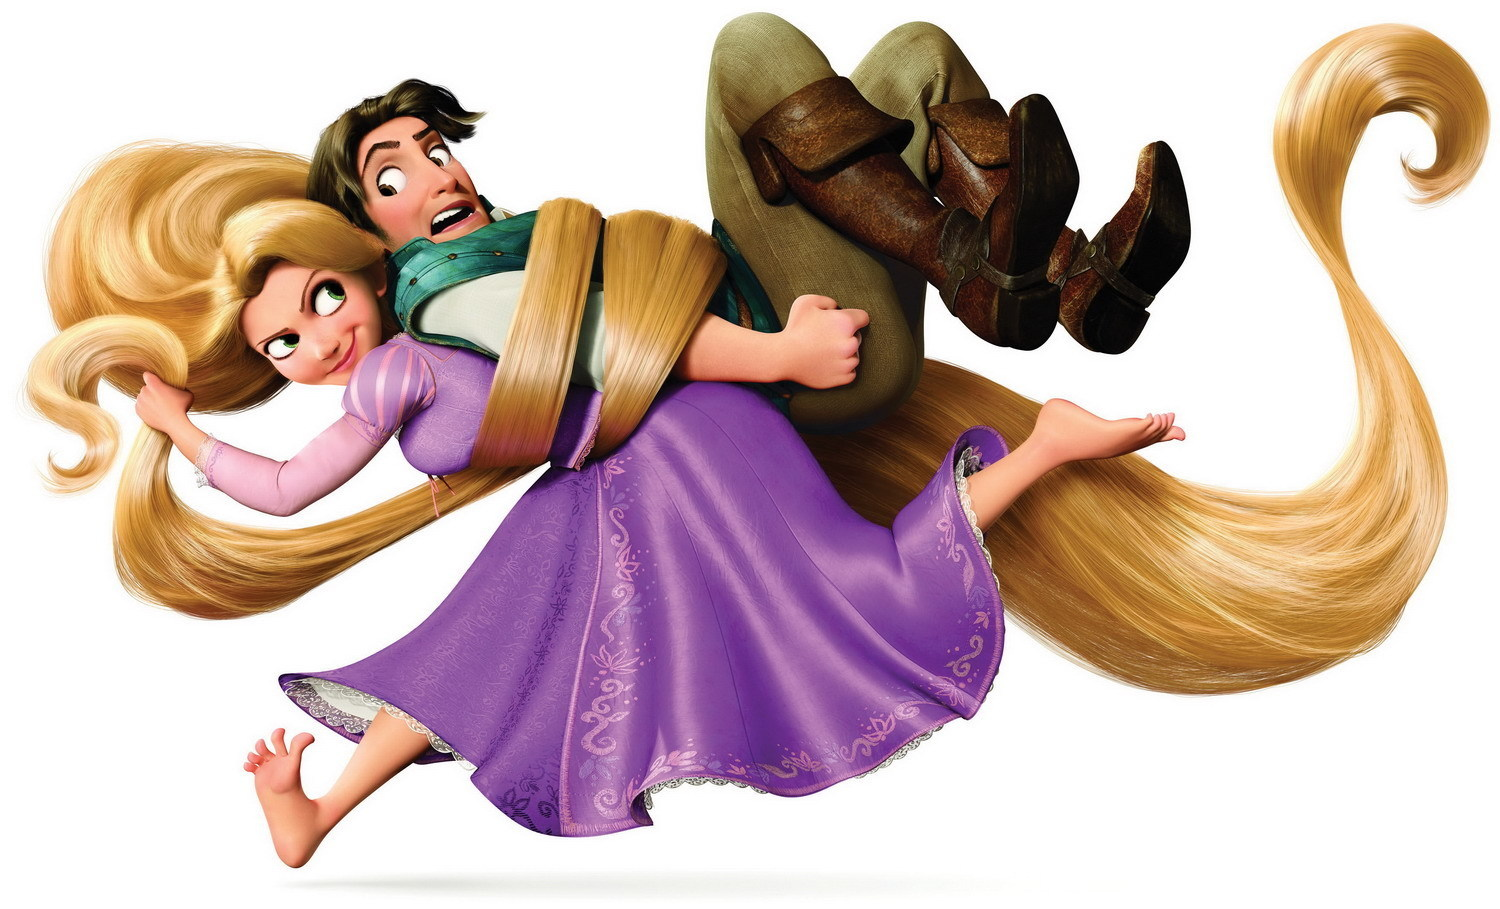 Flynn and rapunzel tangled photo 15575990 fanpop - Image raiponse ...